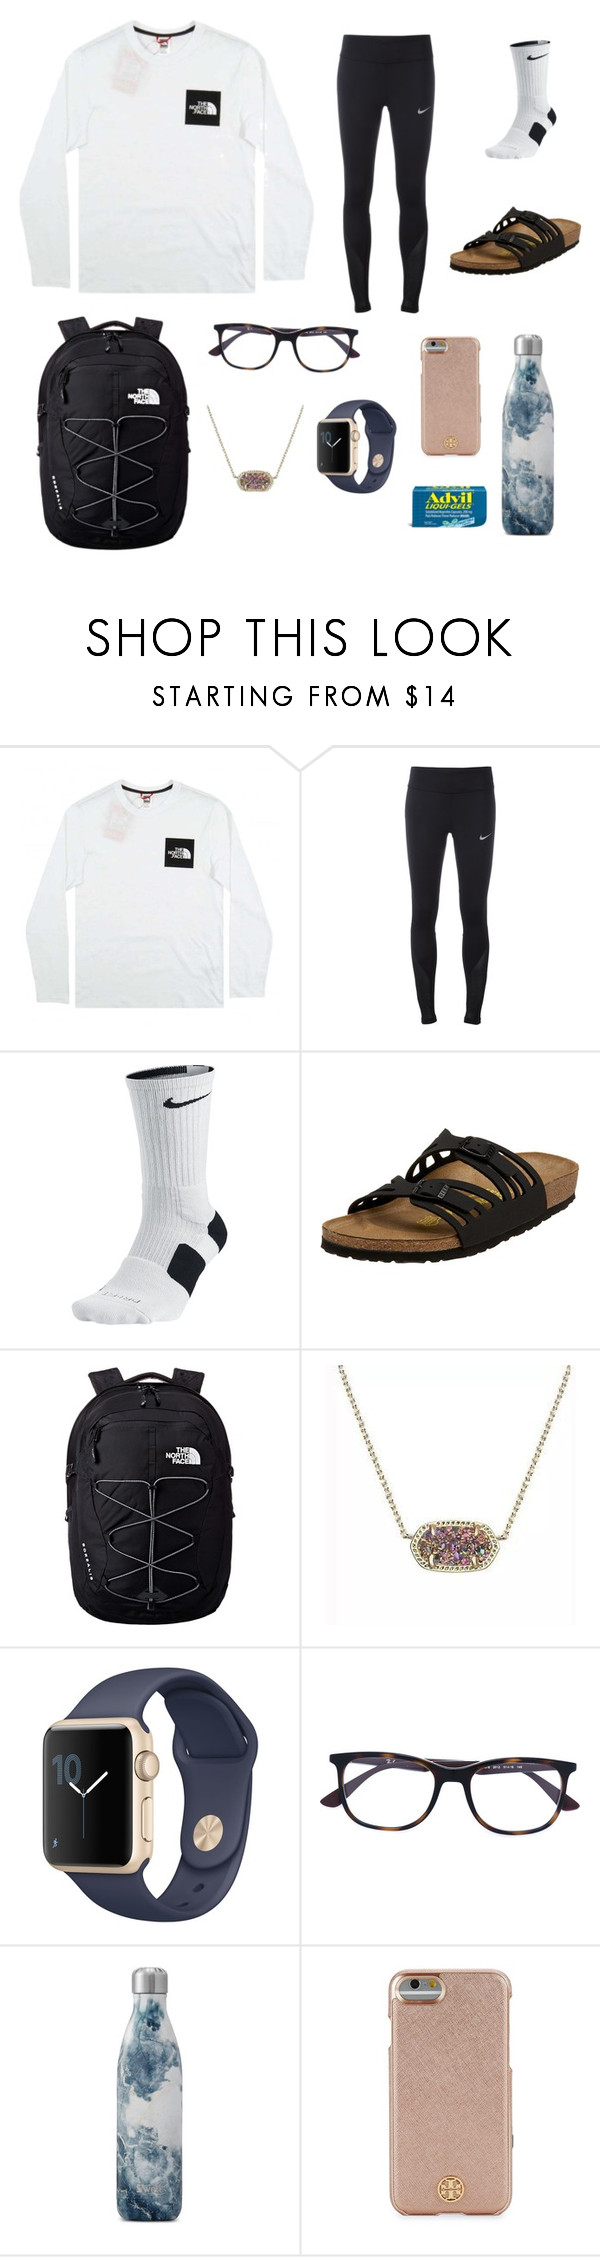 """I stubbed my toe and it hurts rlly bad y'all"" by livvywhi ❤ liked on Polyvore featuring The North Face, NIKE, Birkenstock, Kendra Scott, Ray-Ban, S'well, Tory Burch and Liqui"